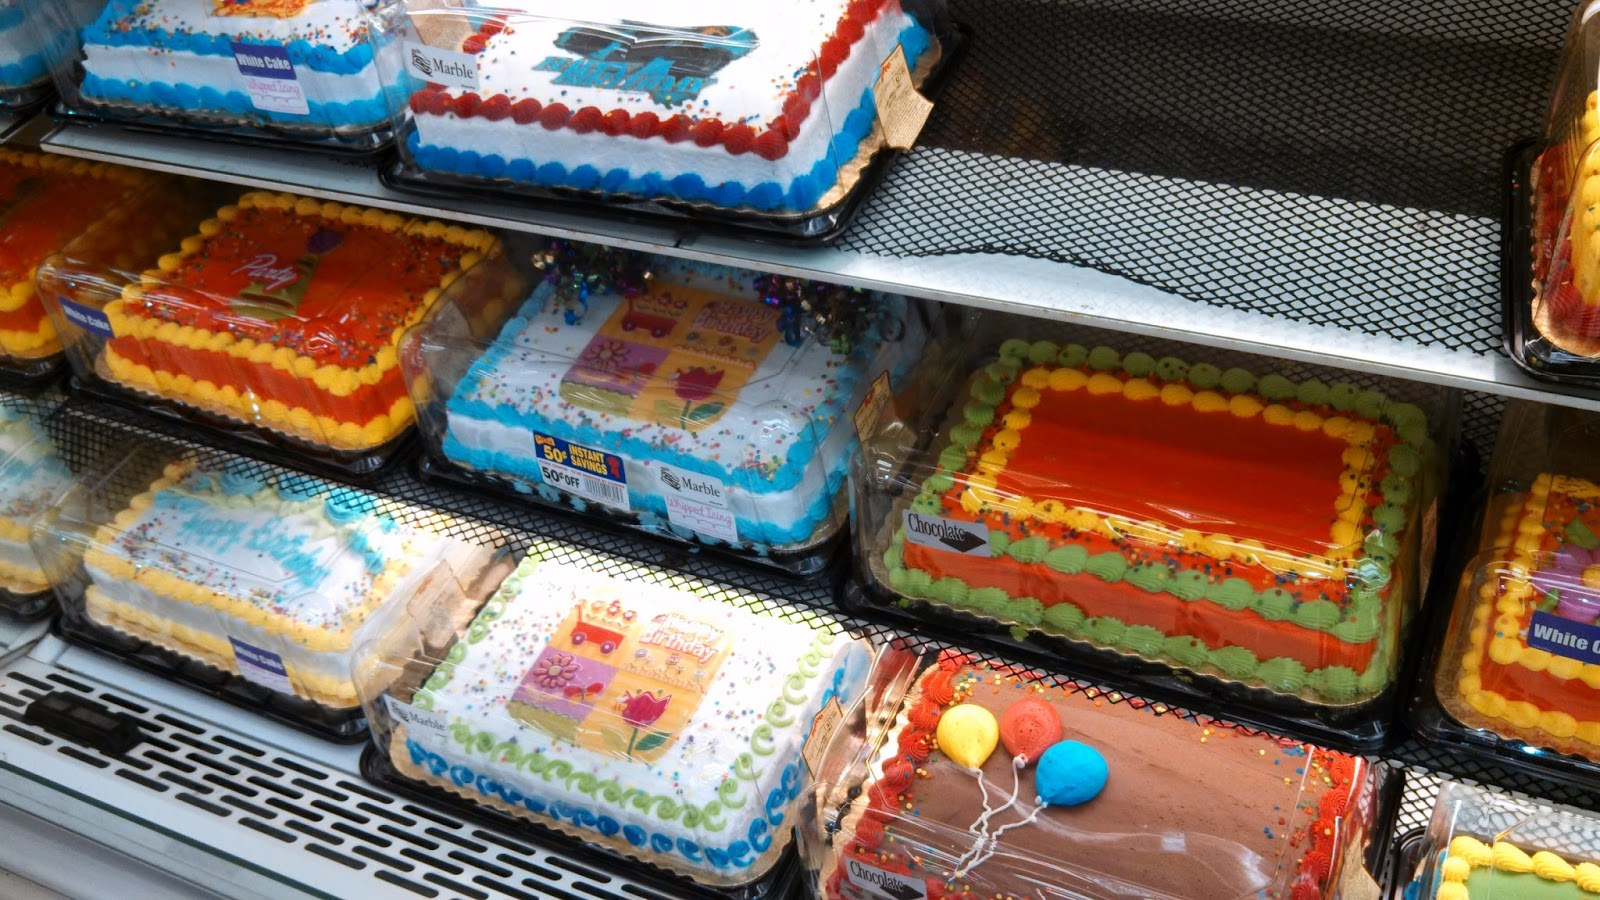 Grocery Store Bakery Cakes